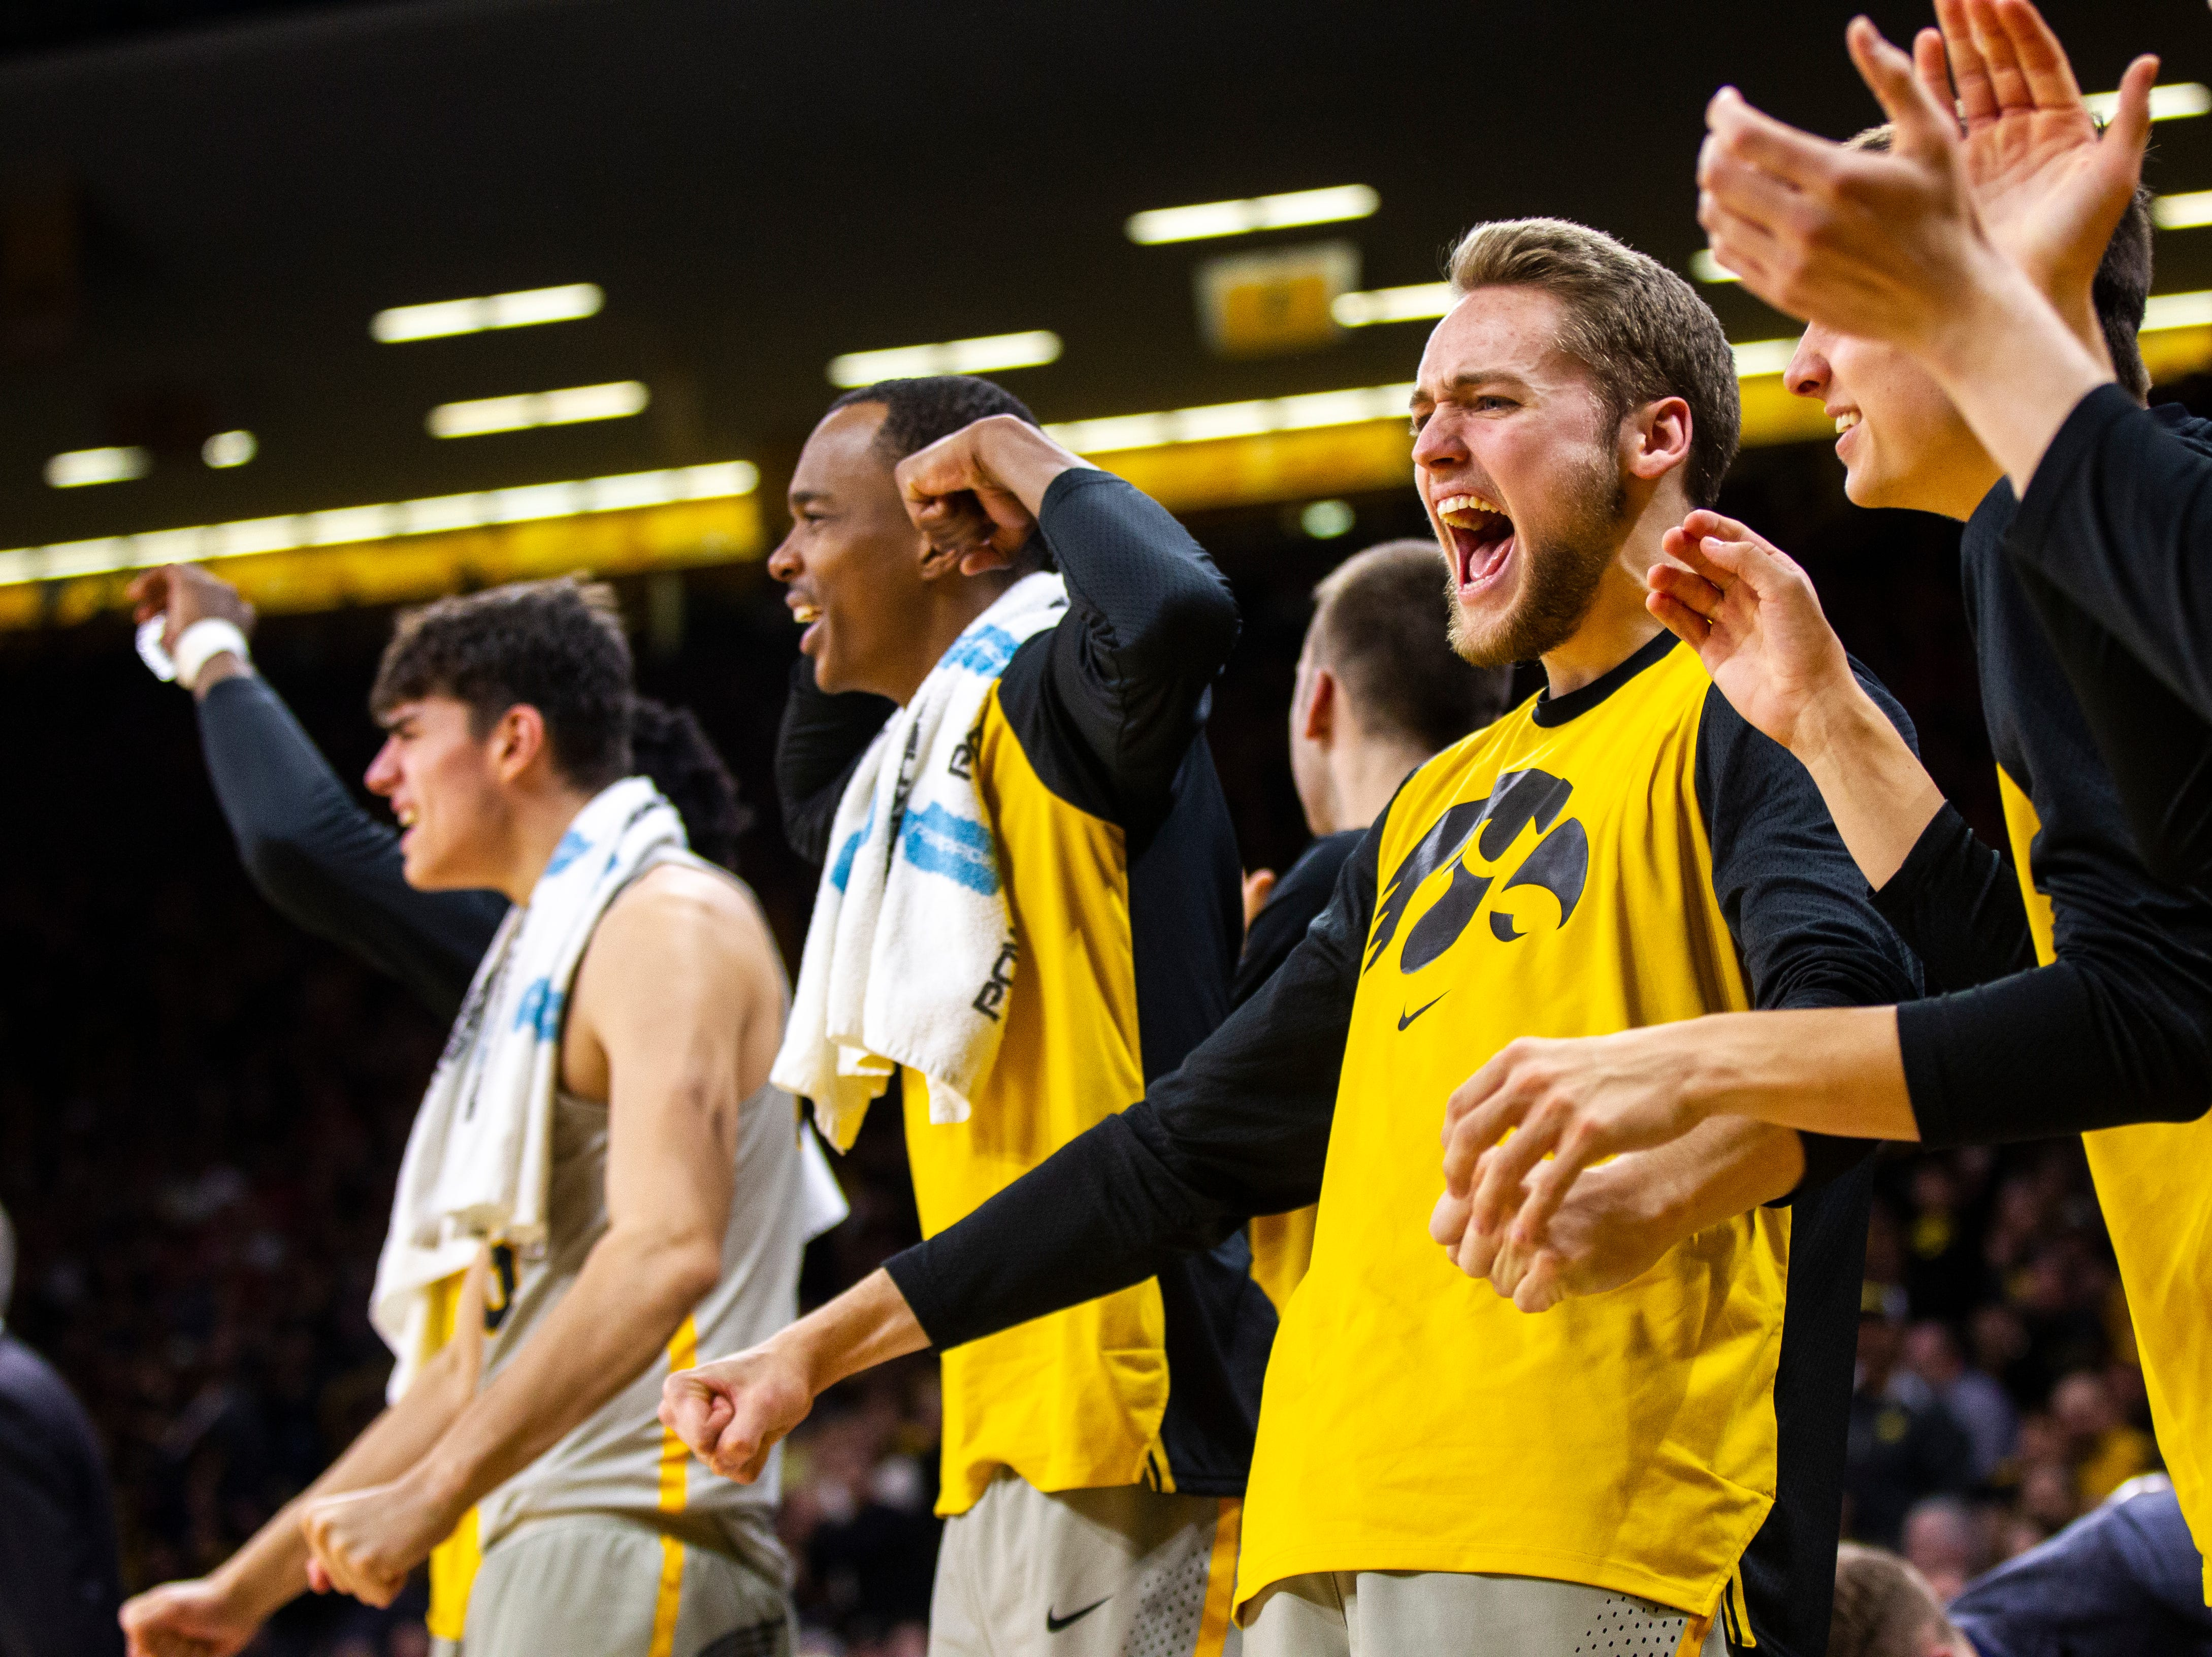 Iowa's Riley Till and Maishe Dailey react on the bench during a NCAA Big Ten Conference men's basketball game on Sunday, Jan. 6, 2019, at the Carver-Hawkeye Arena in Iowa City, Iowa.